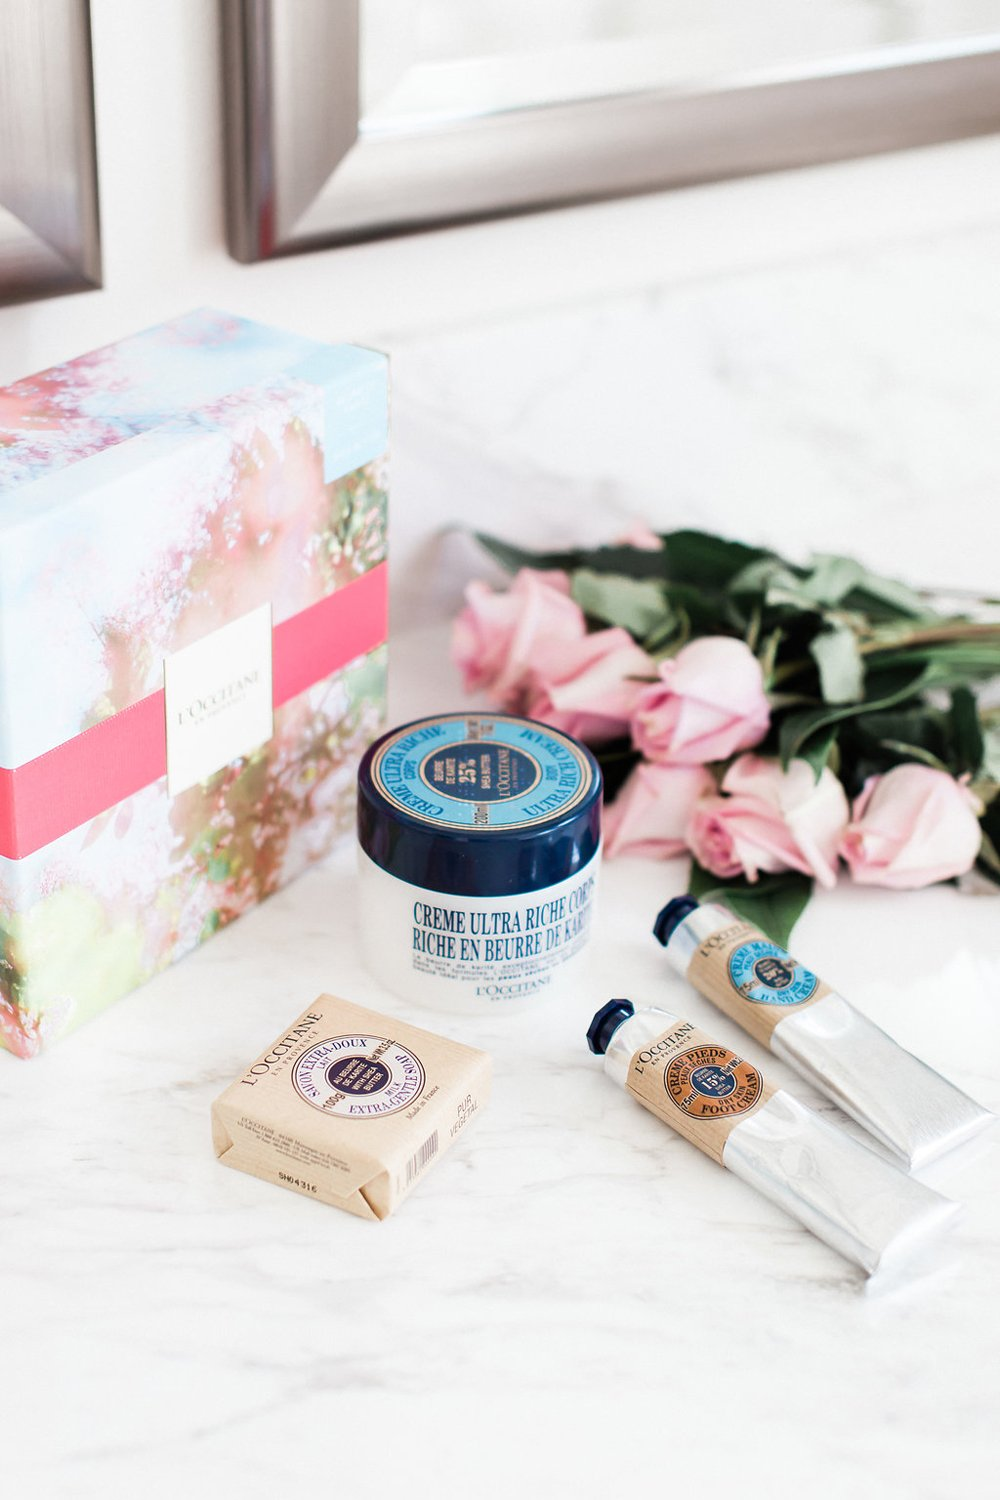 Merrick's Art L'Occitane Gift Box